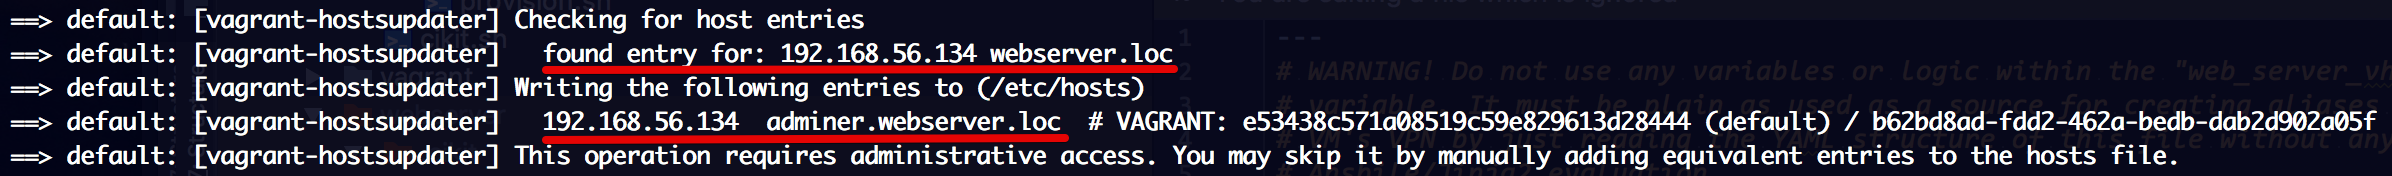 Vagrant hosts manager adds needed entries to hosts